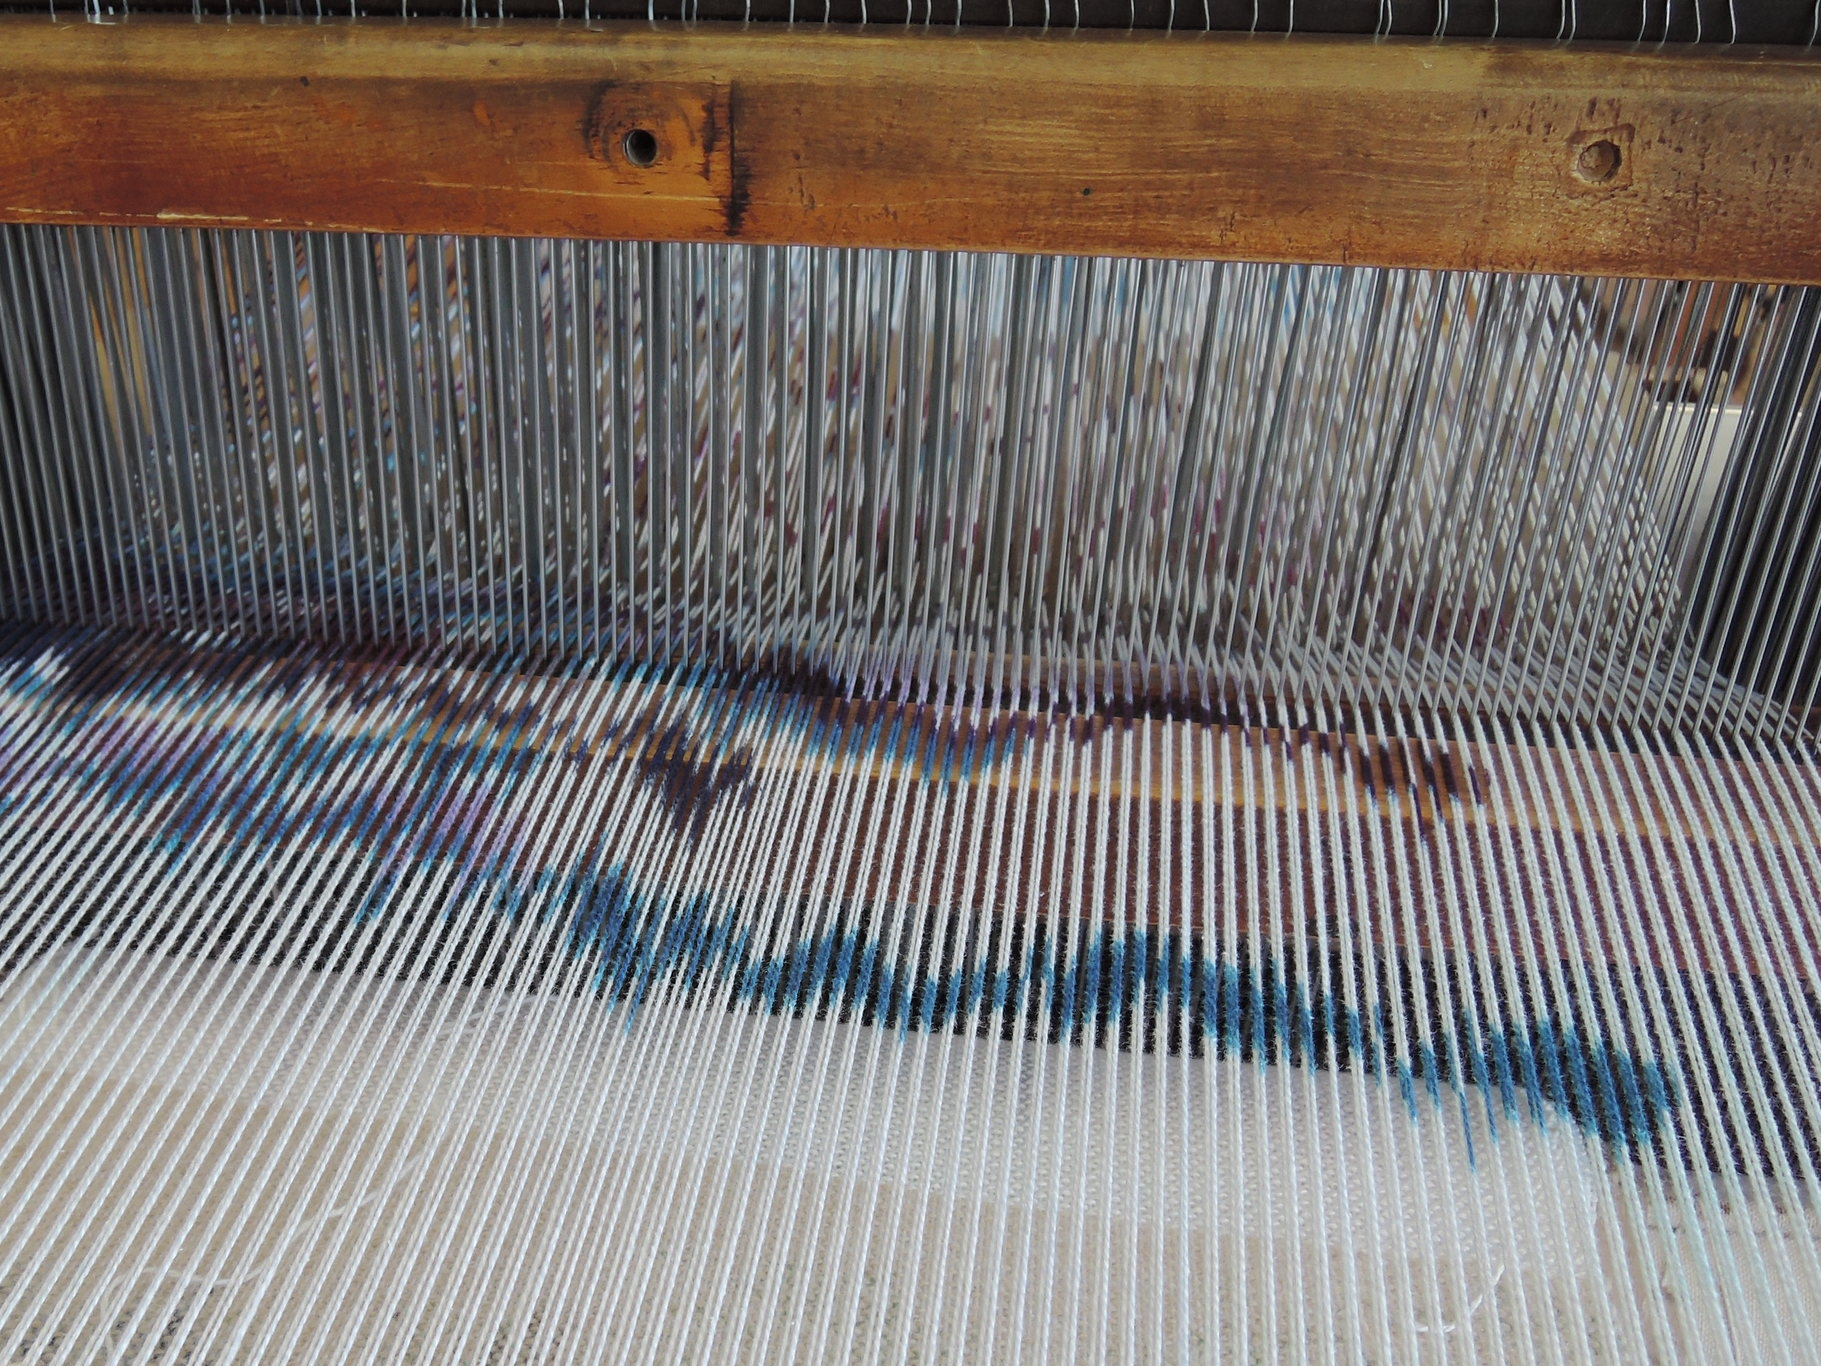 Ready to weave.